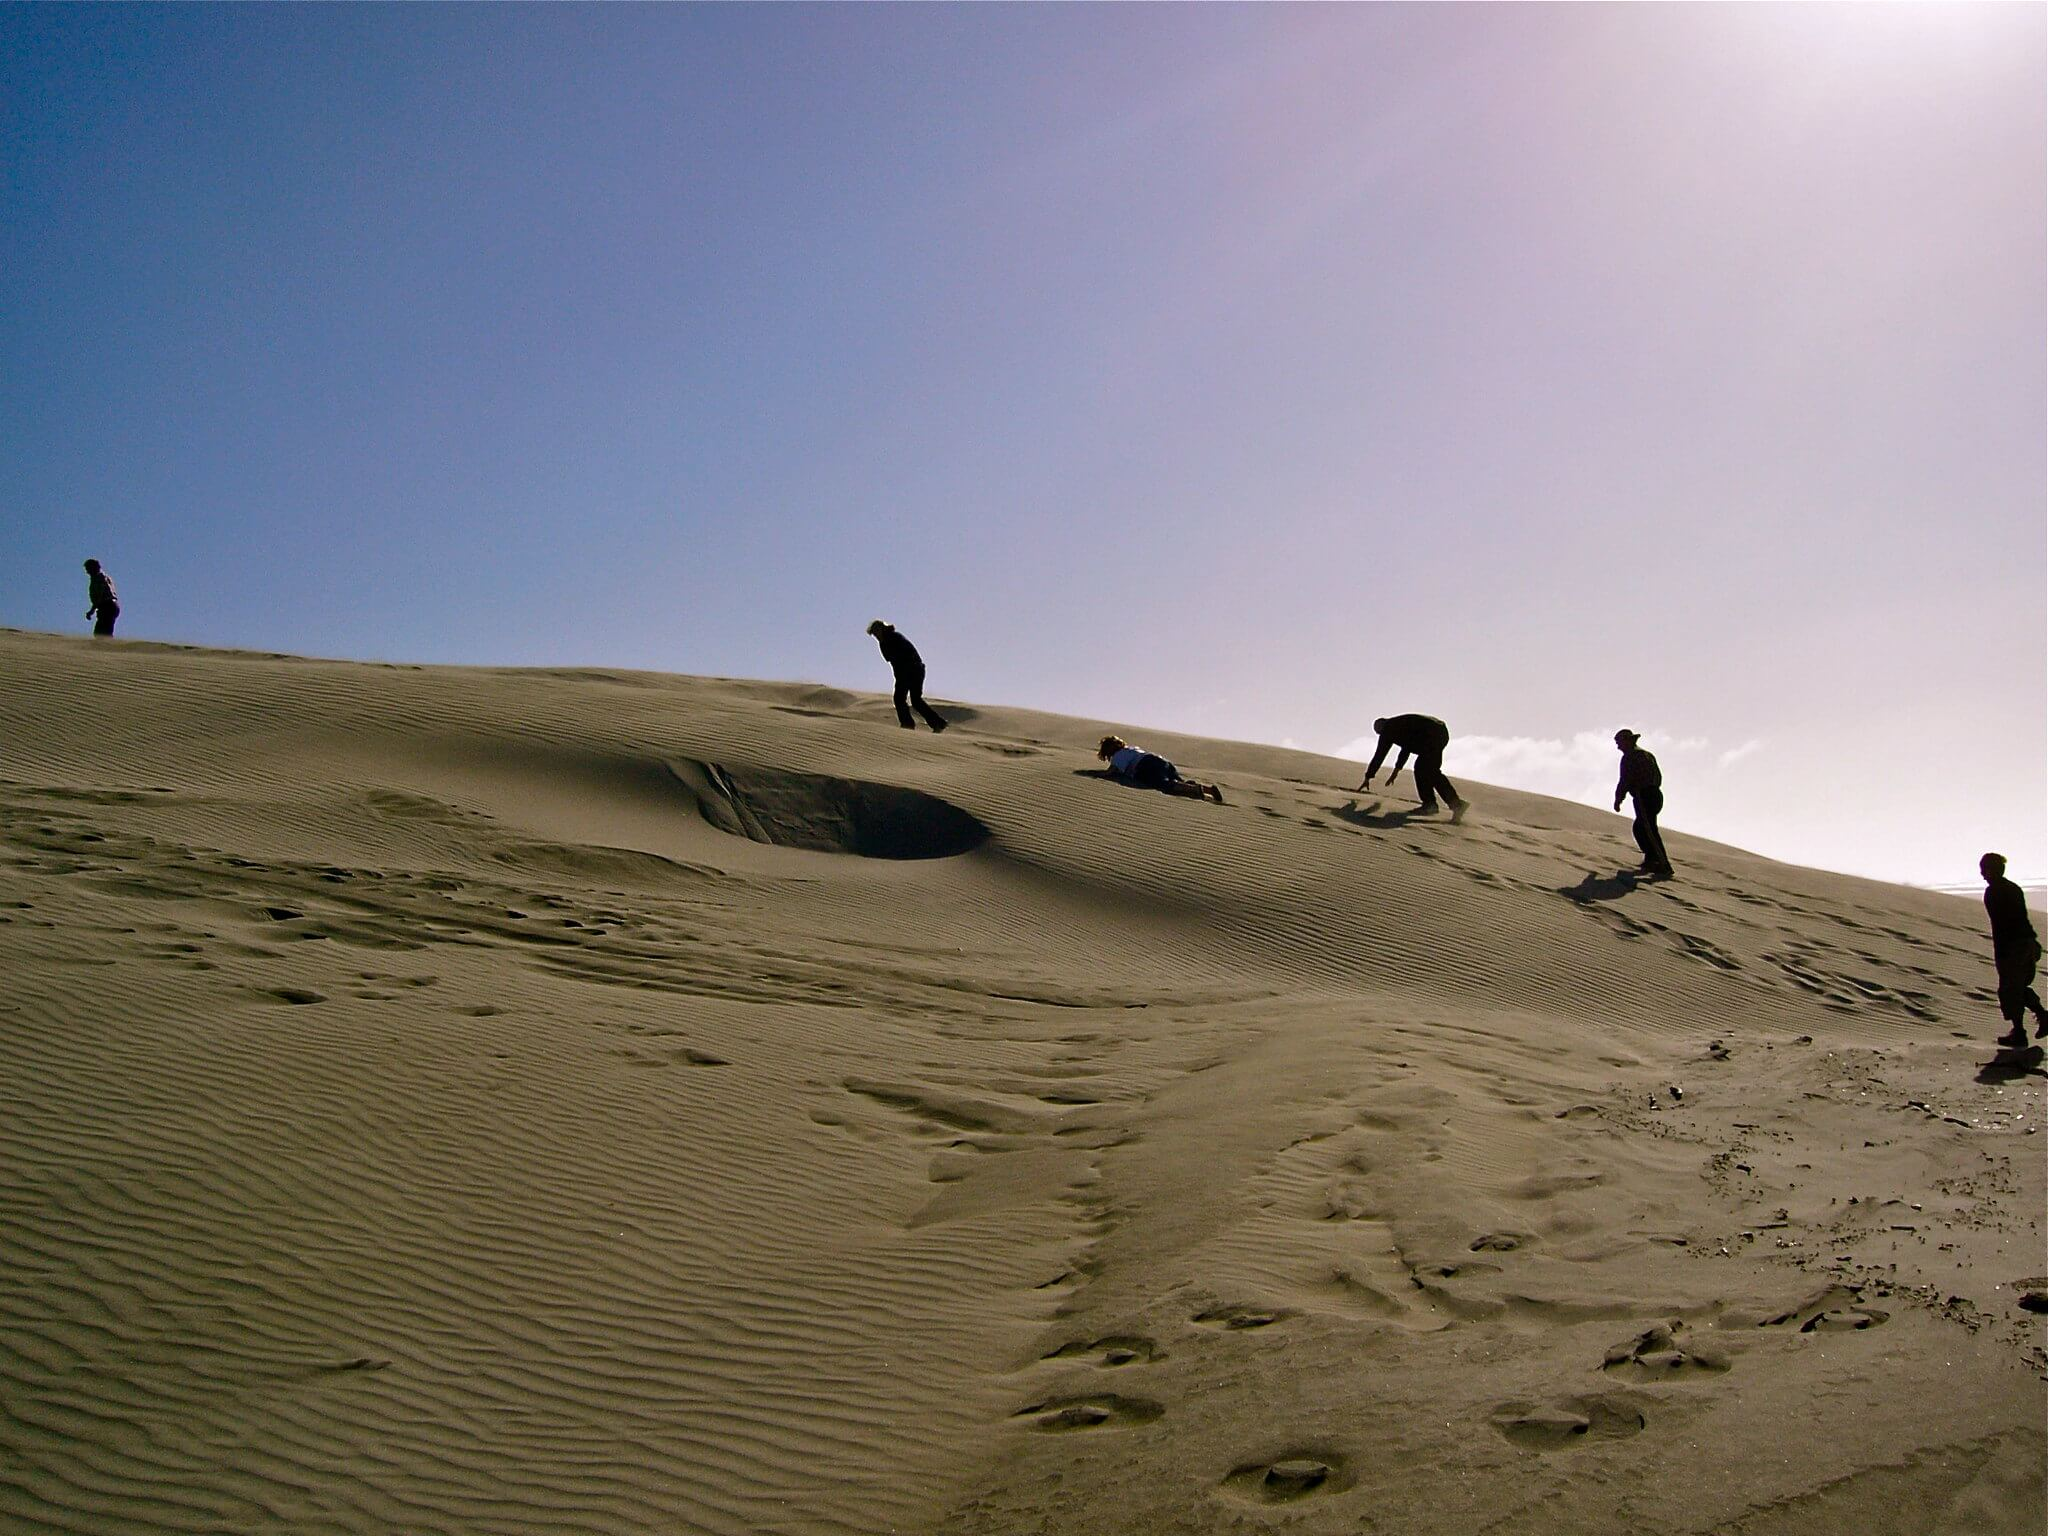 Hiking up the dunes while on a driving tour of the Farewell Spit, New Zealand